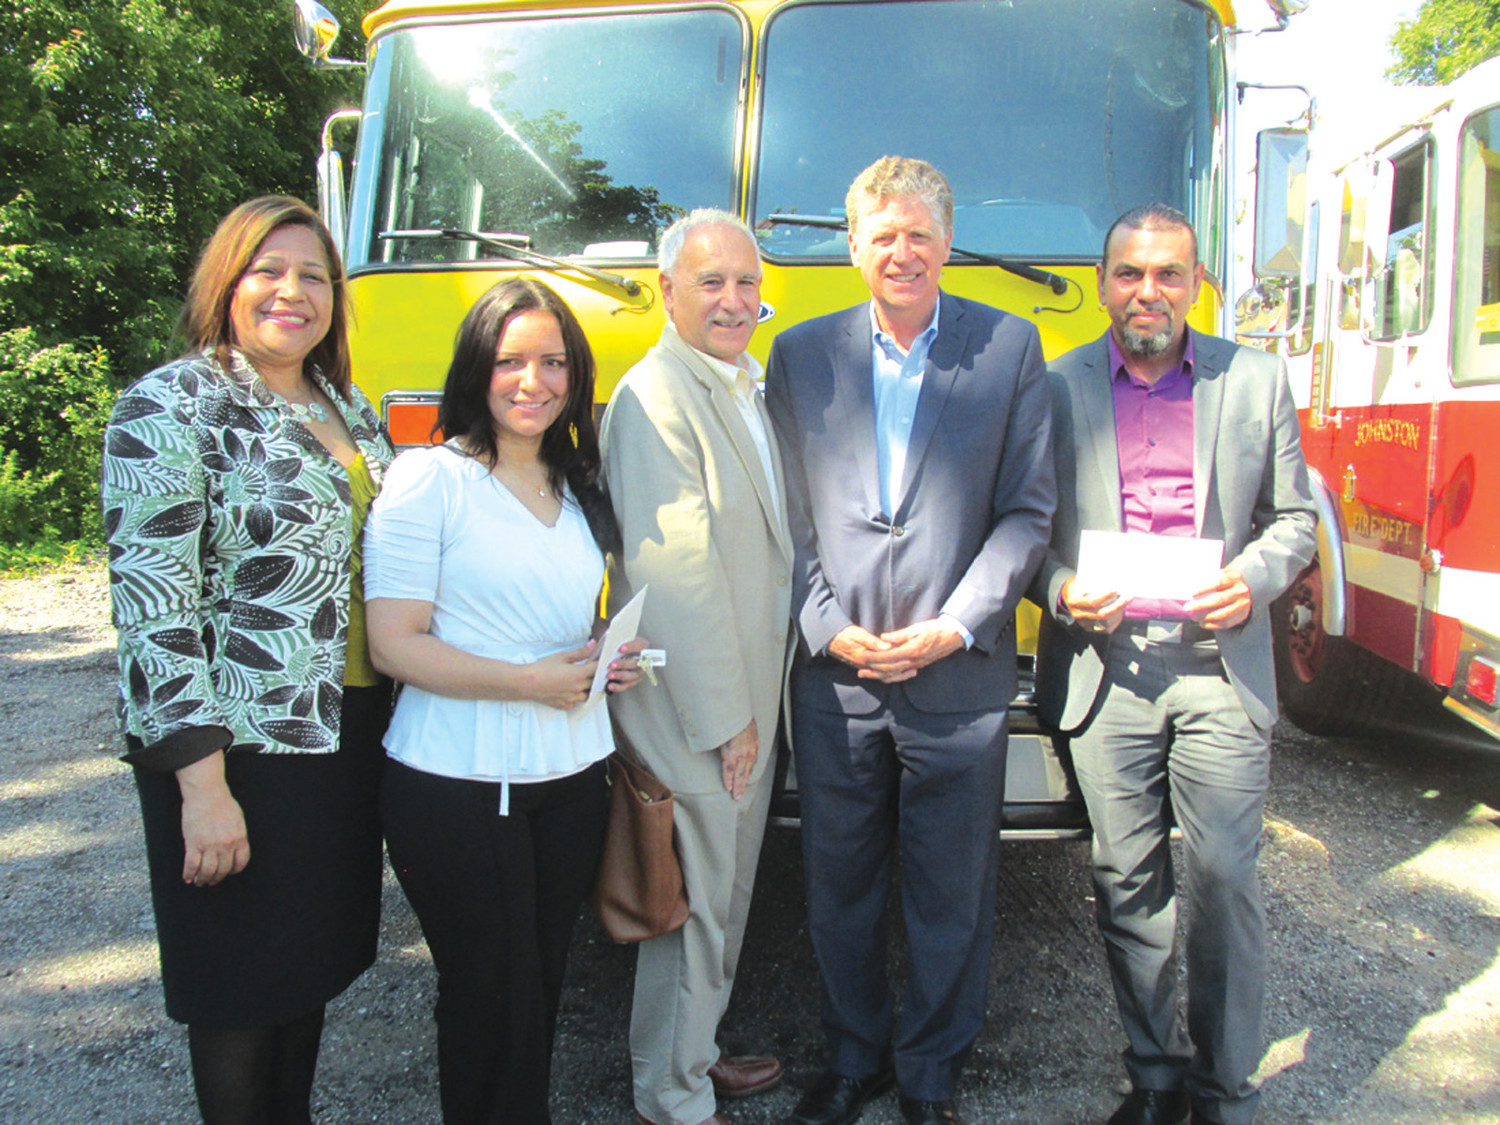 GOODWILL GROUP: RI State Sen. Ana B. Quezada, Carol Aguasvivas, Mayor Joseph Polisena, Lt. Gov. Dan McKee and Julio Ortiz are all smiles after the Town of Johnston donated two fire trucks and as many life saving inflatable boats that will be of great use in the Dominican Republic.